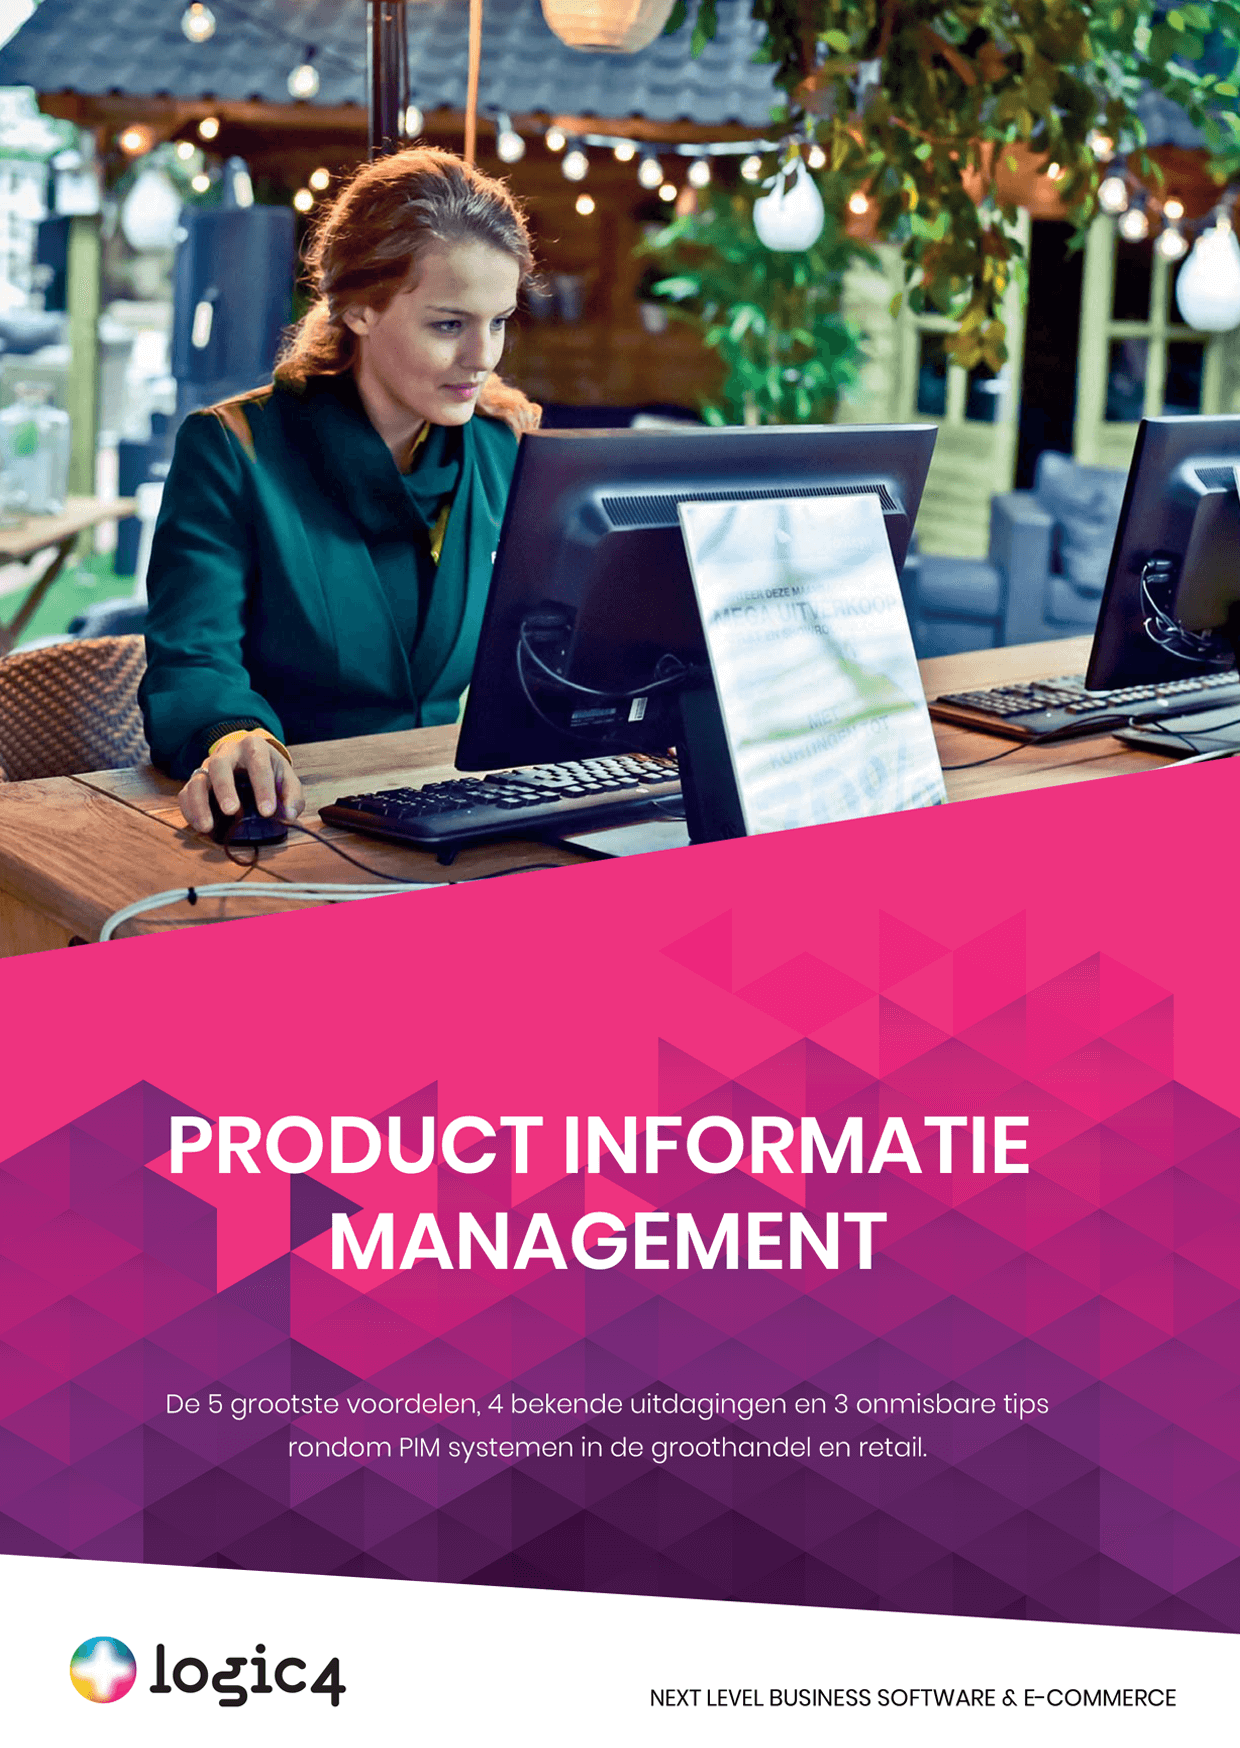 Whitepaper Product Informatie Management cover